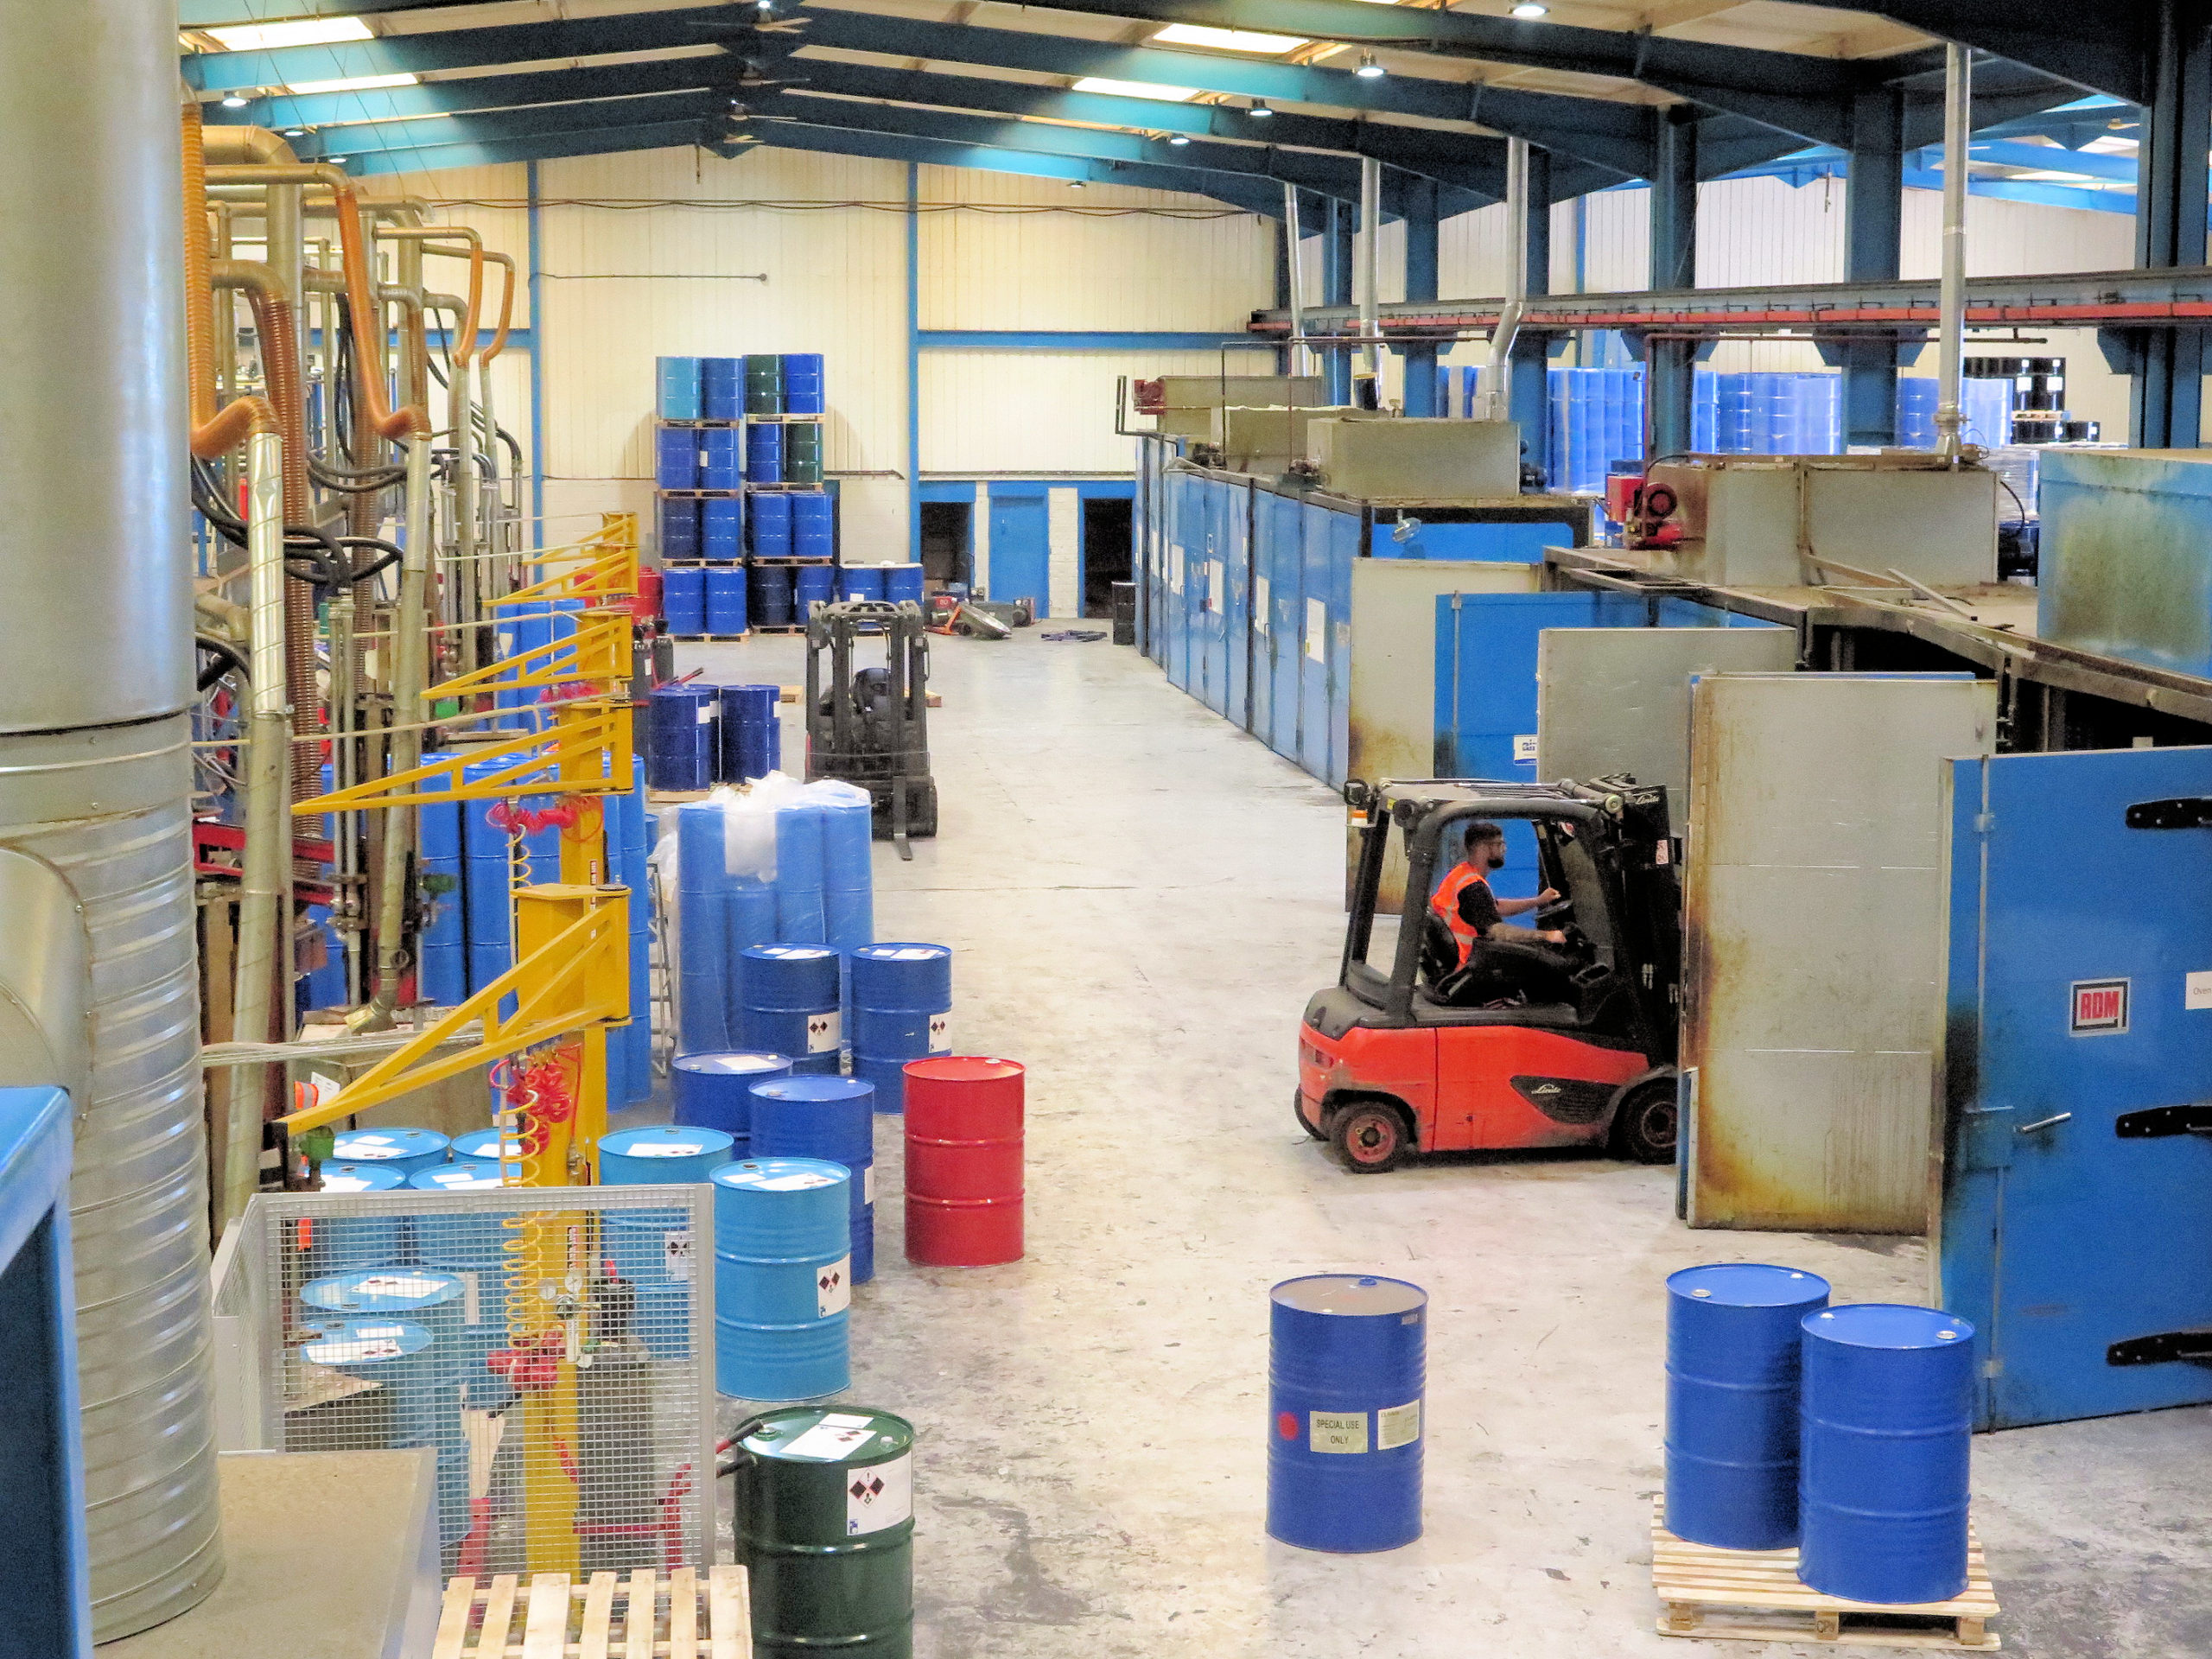 Notedome's Coventry facility